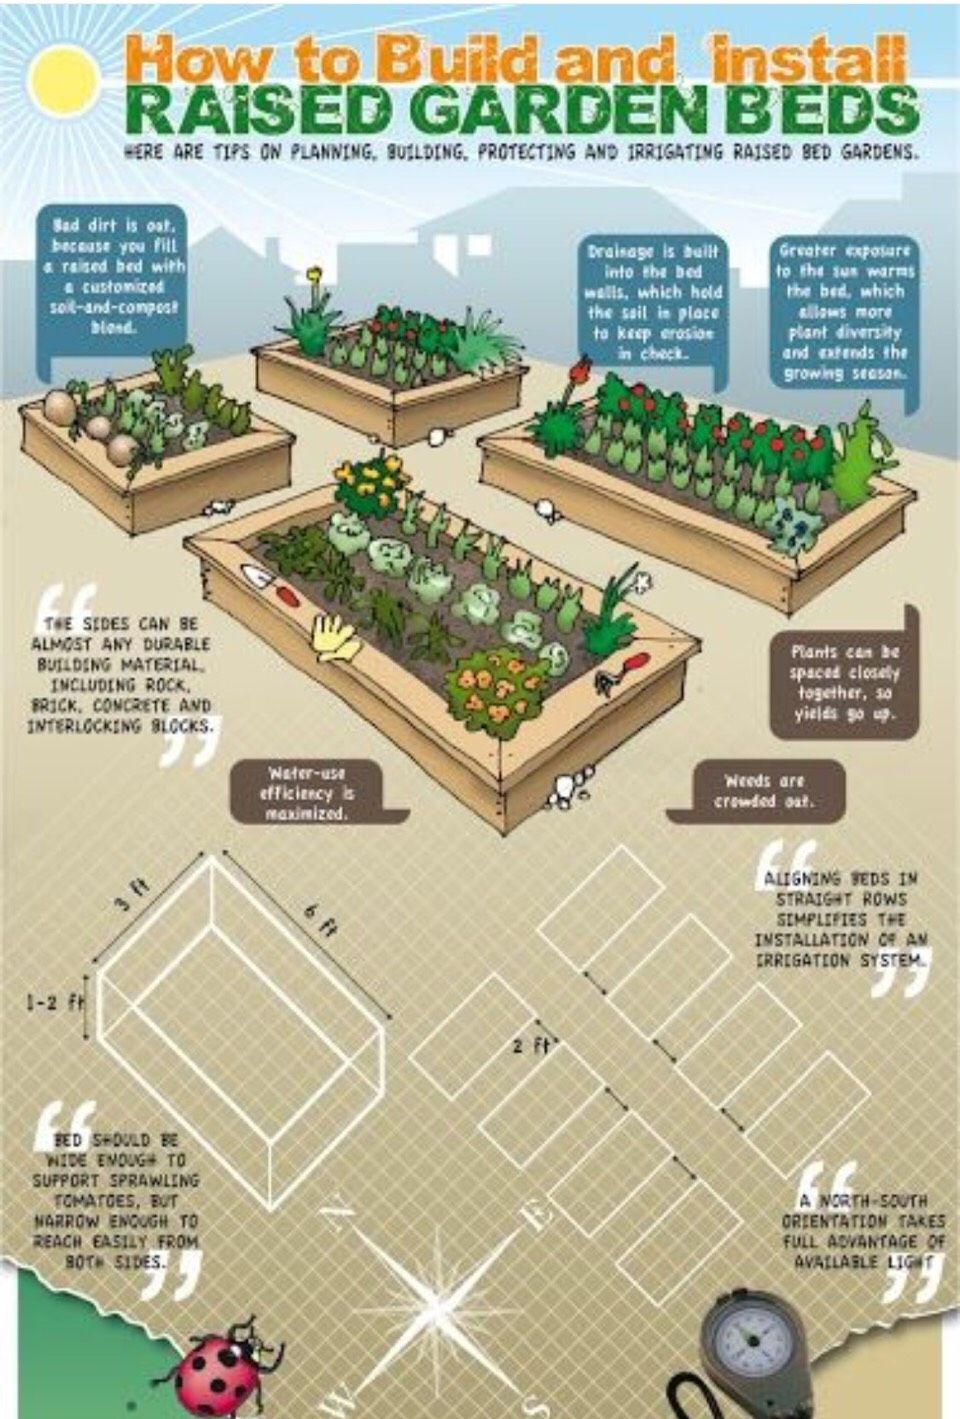 How To Build And Install Raised Garden Beds Tipit Garden Beds Raised Garden Diy Raised Garden